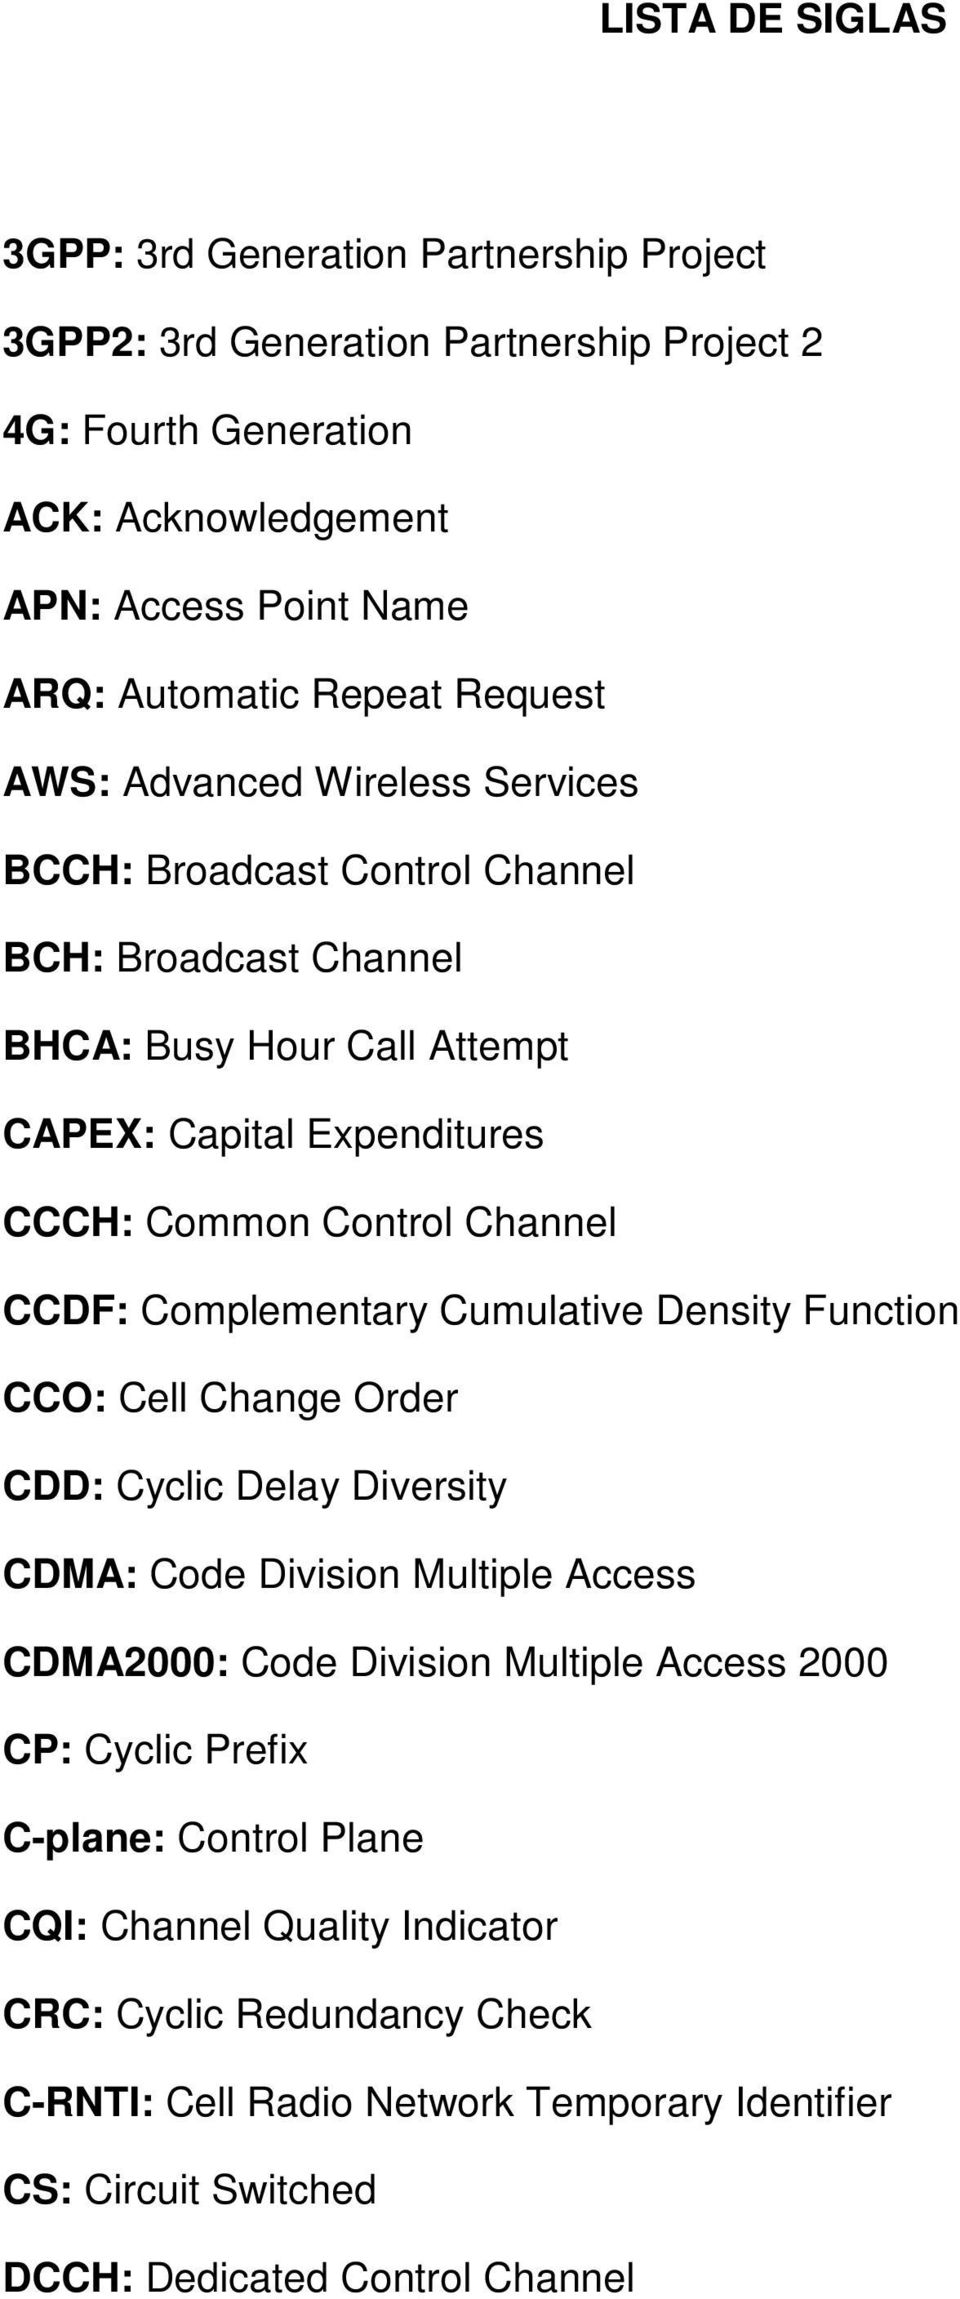 CCDF: Complementary Cumulative Density Function CCO: Cell Change Order CDD: Cyclic Delay Diversity CDMA: Code Division Multiple Access CDMA2000: Code Division Multiple Access 2000 CP: